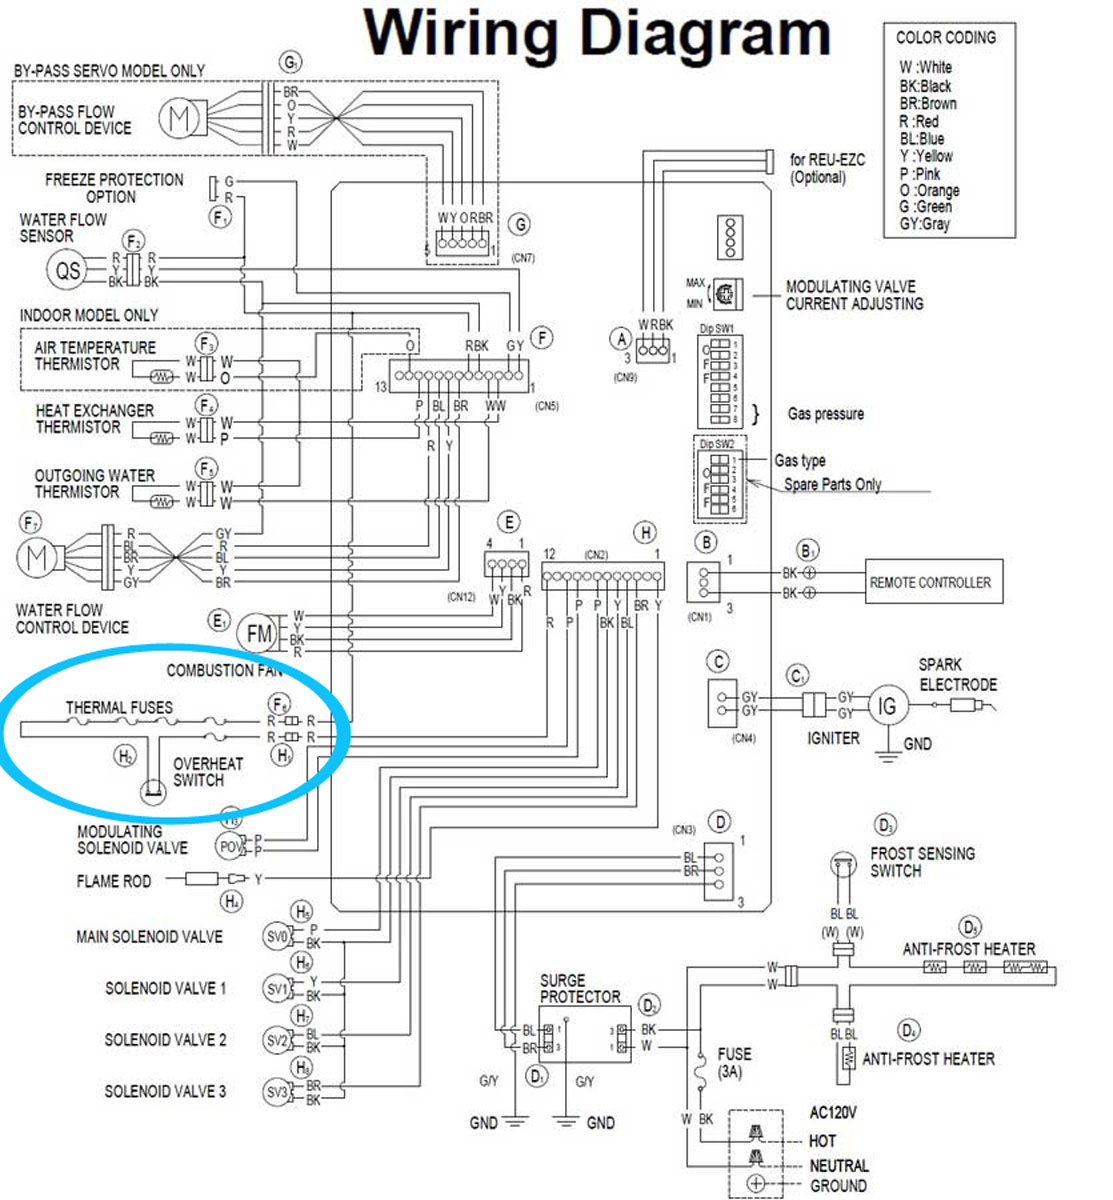 tankless water heater wiring diagram Download-Check the electric troubleshoot from 2008 pdf Tankless gas water heater 19-d